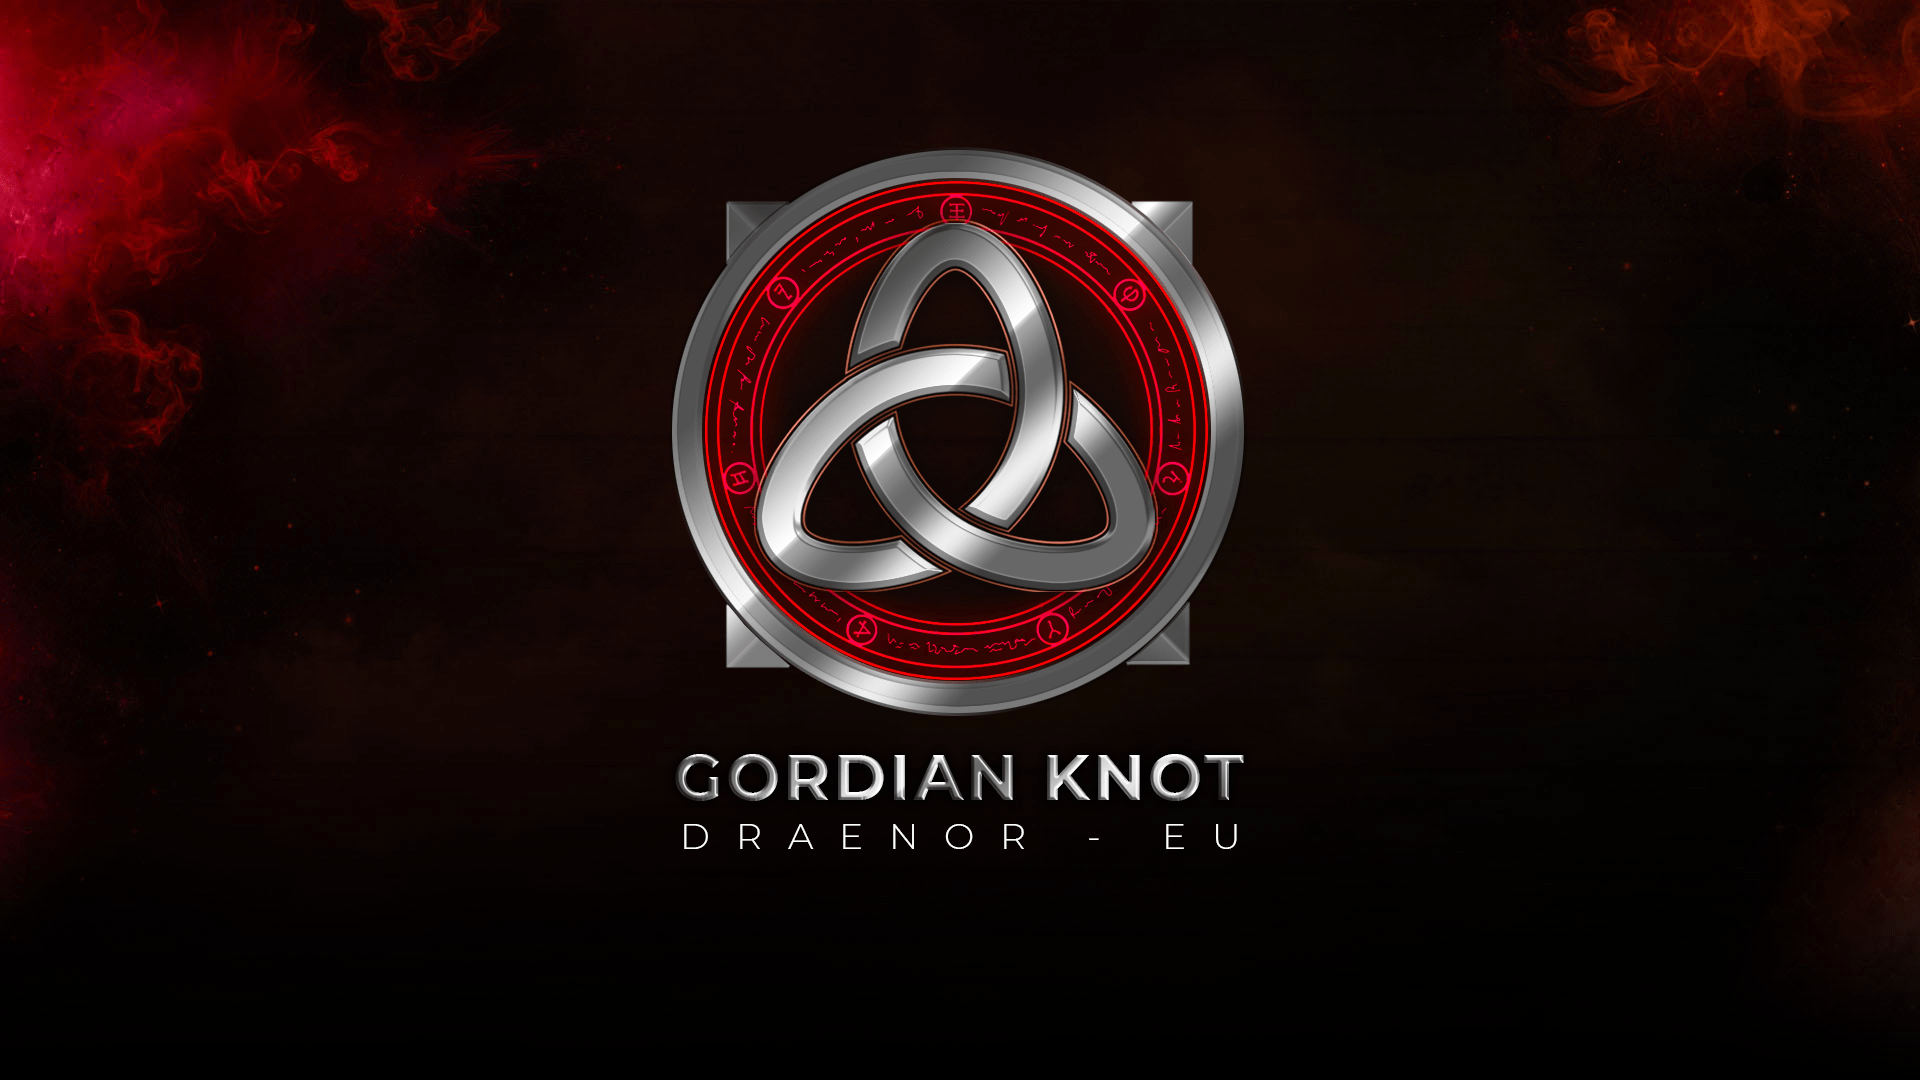 Gordian Knot - Draenor EU - Horde - World of Warcraft Guild WoW